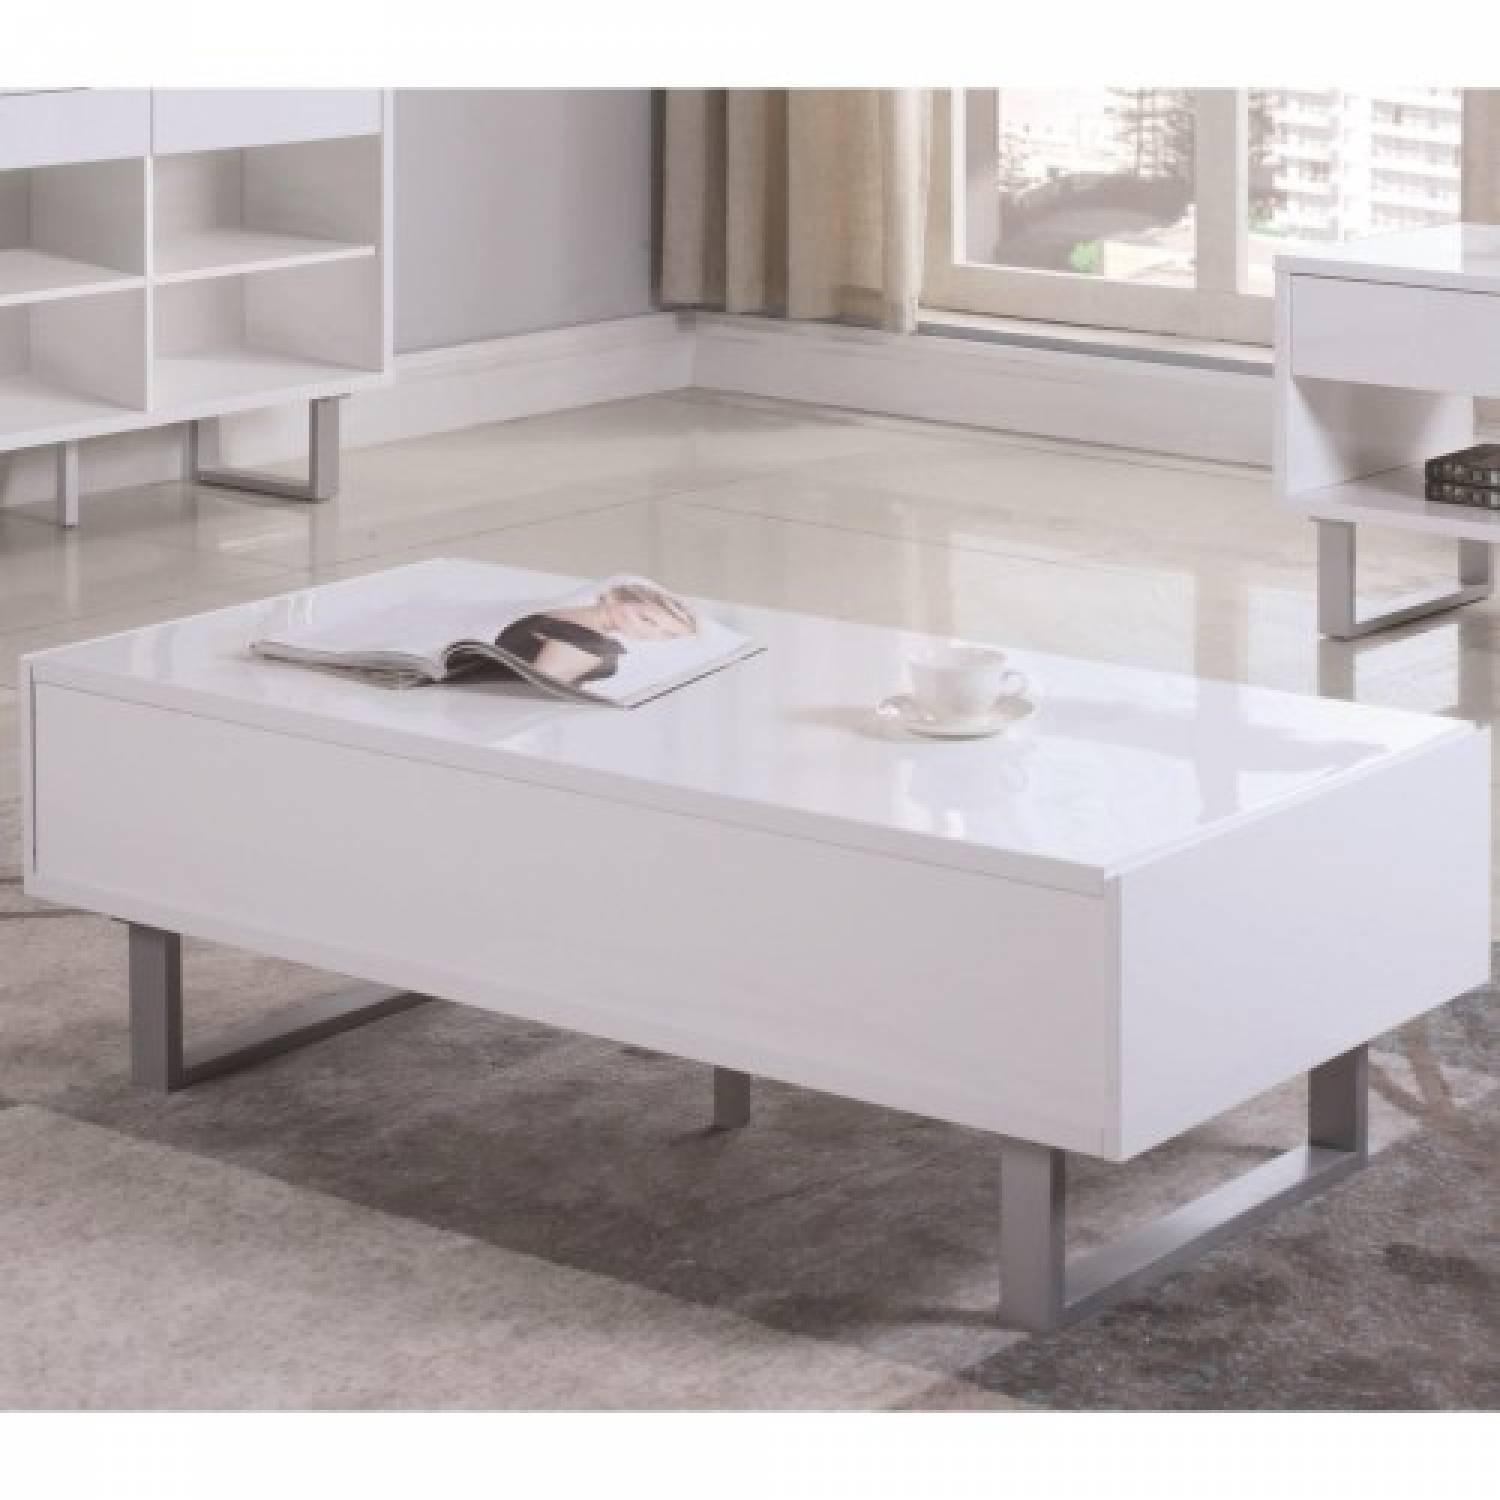 Contemporary Sofa Table in White Gloss w/ Drawers-2